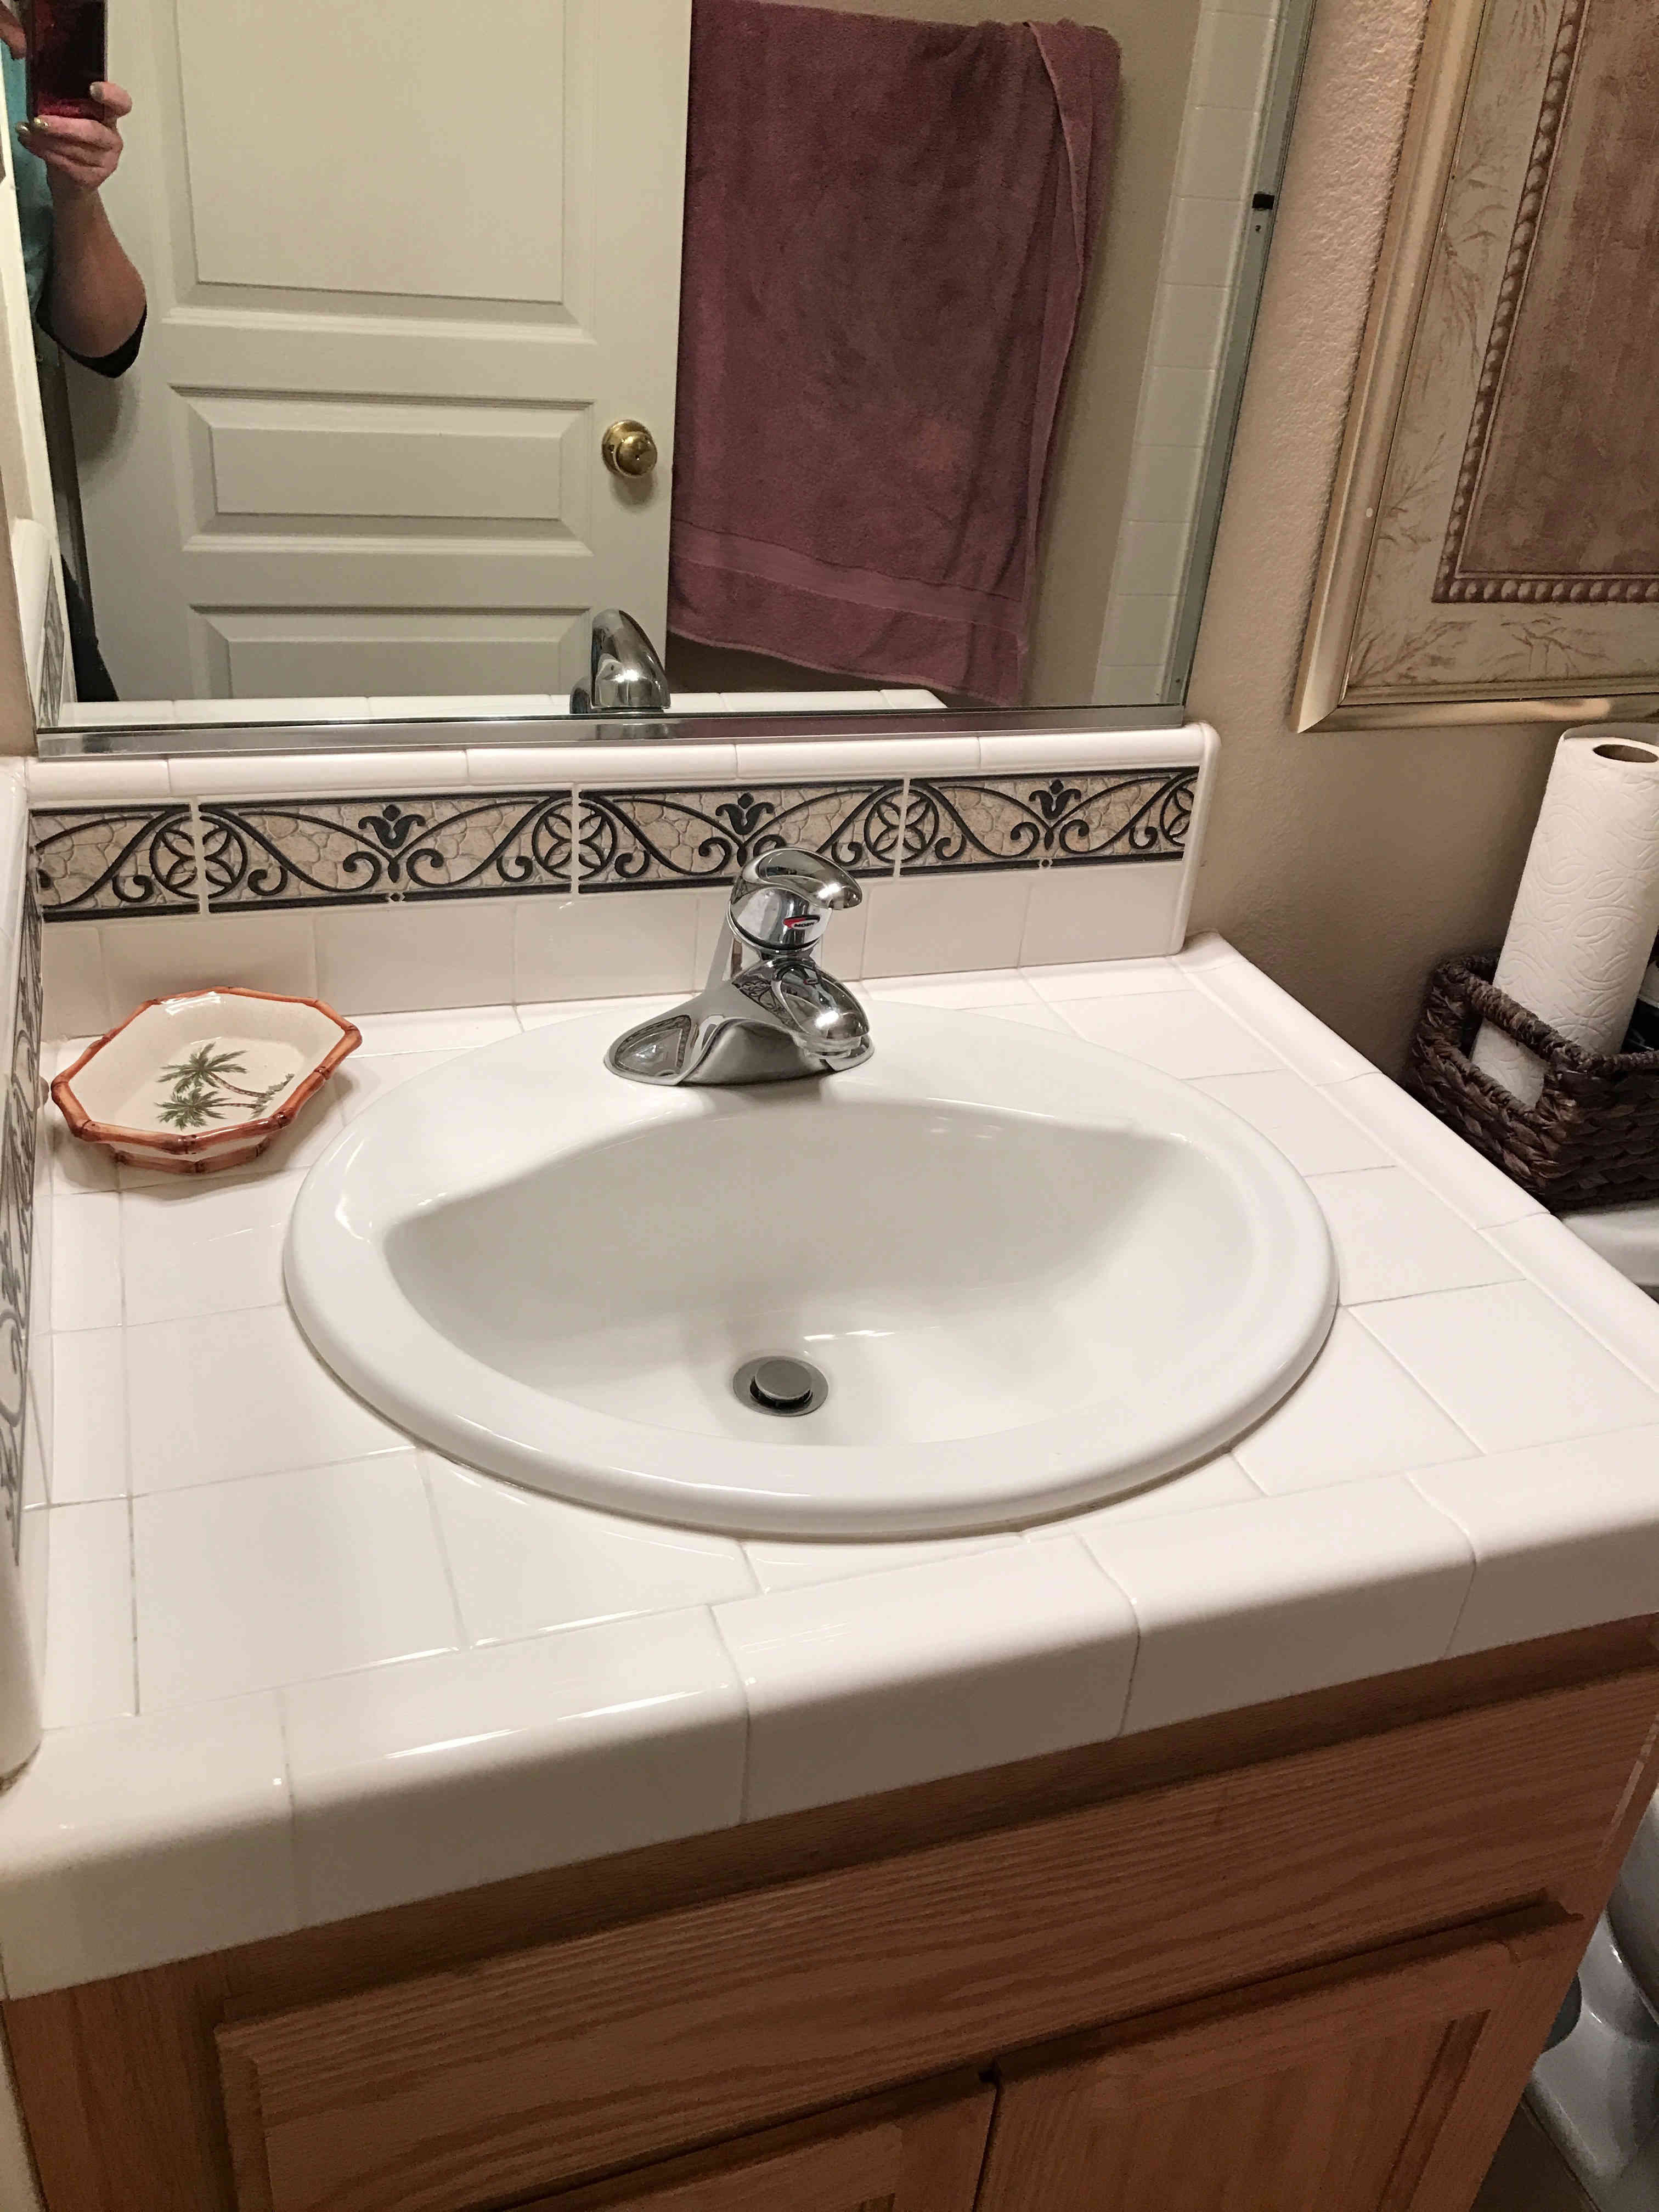 bathroom sink after being cleaned